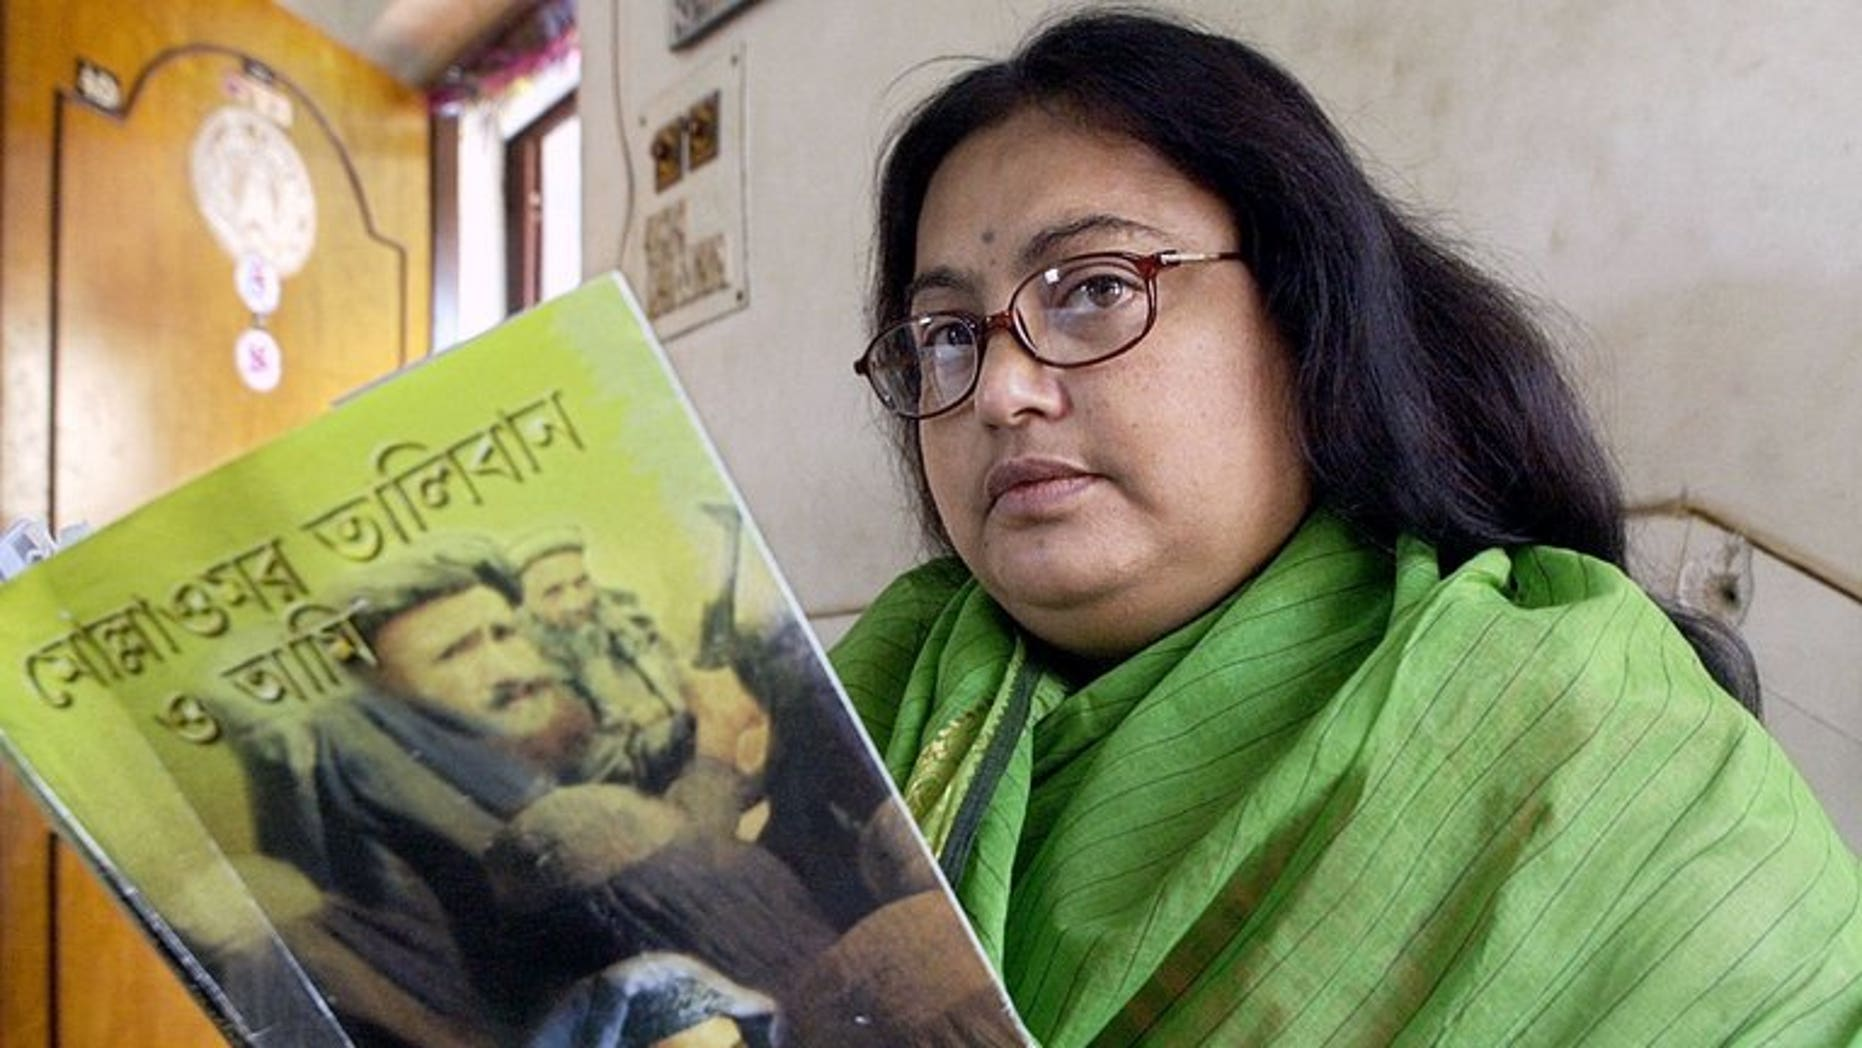 """In this photograph taken on March 6, 2003, Indian author Sushmita Banerjee holds one of her Bengali language novels """"Mollah Omar Taliban O Aami"""" (Mollah Omar, Taliban and Me) in Kolkata. Suspected Taliban militants have shot dead Banerjee in the eastern Afghan province of Paktika, police said."""